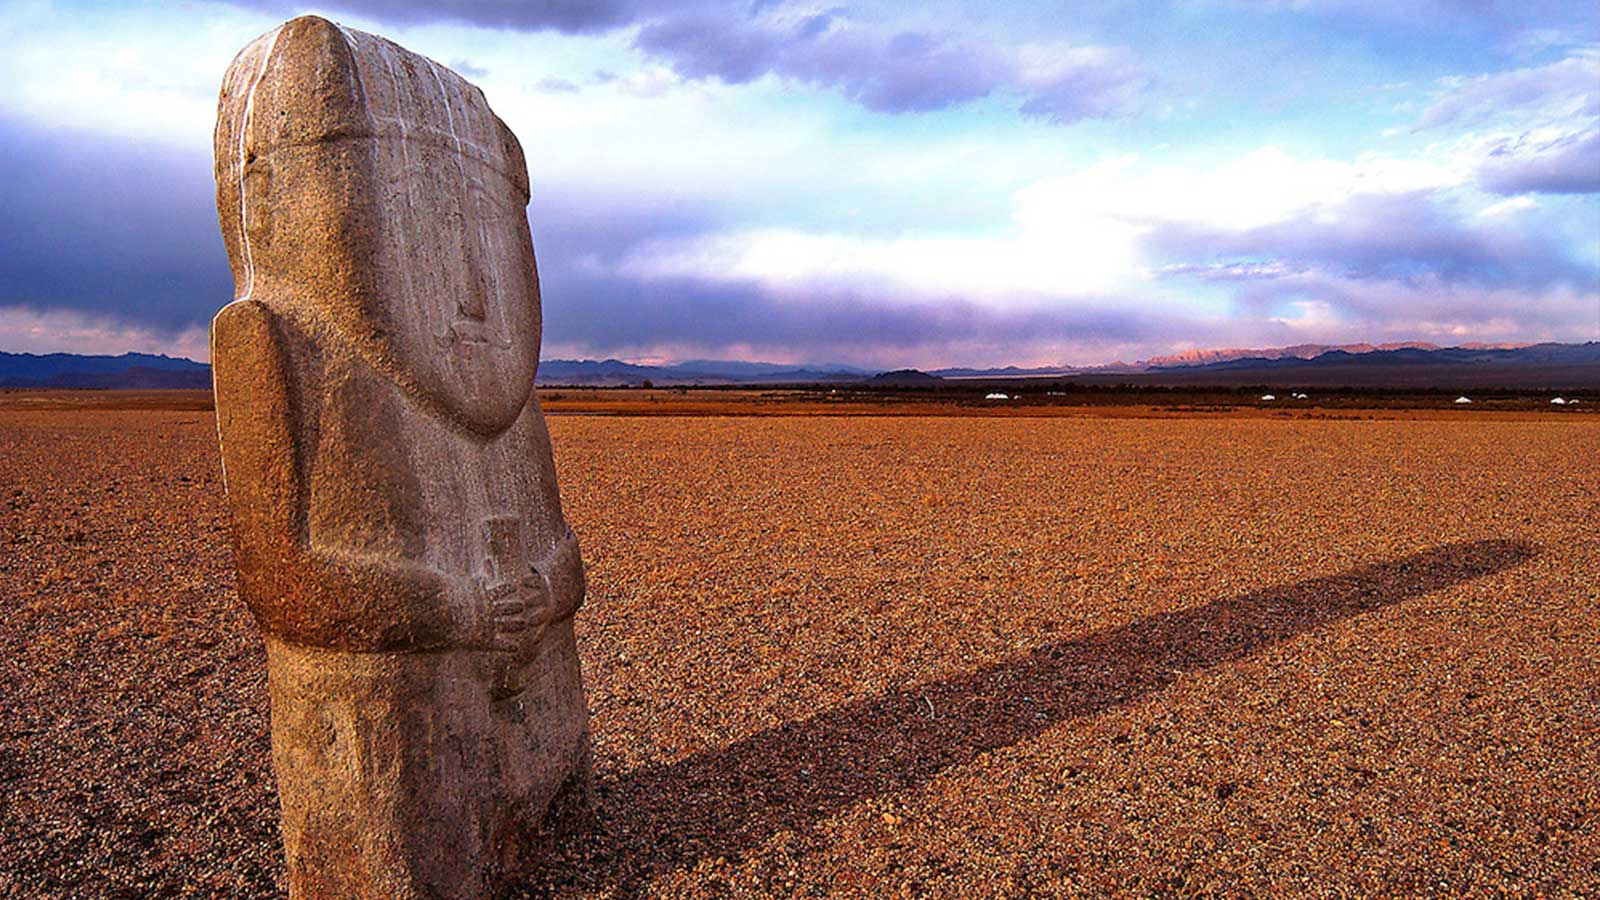 Turkish Monuments in Mongolia